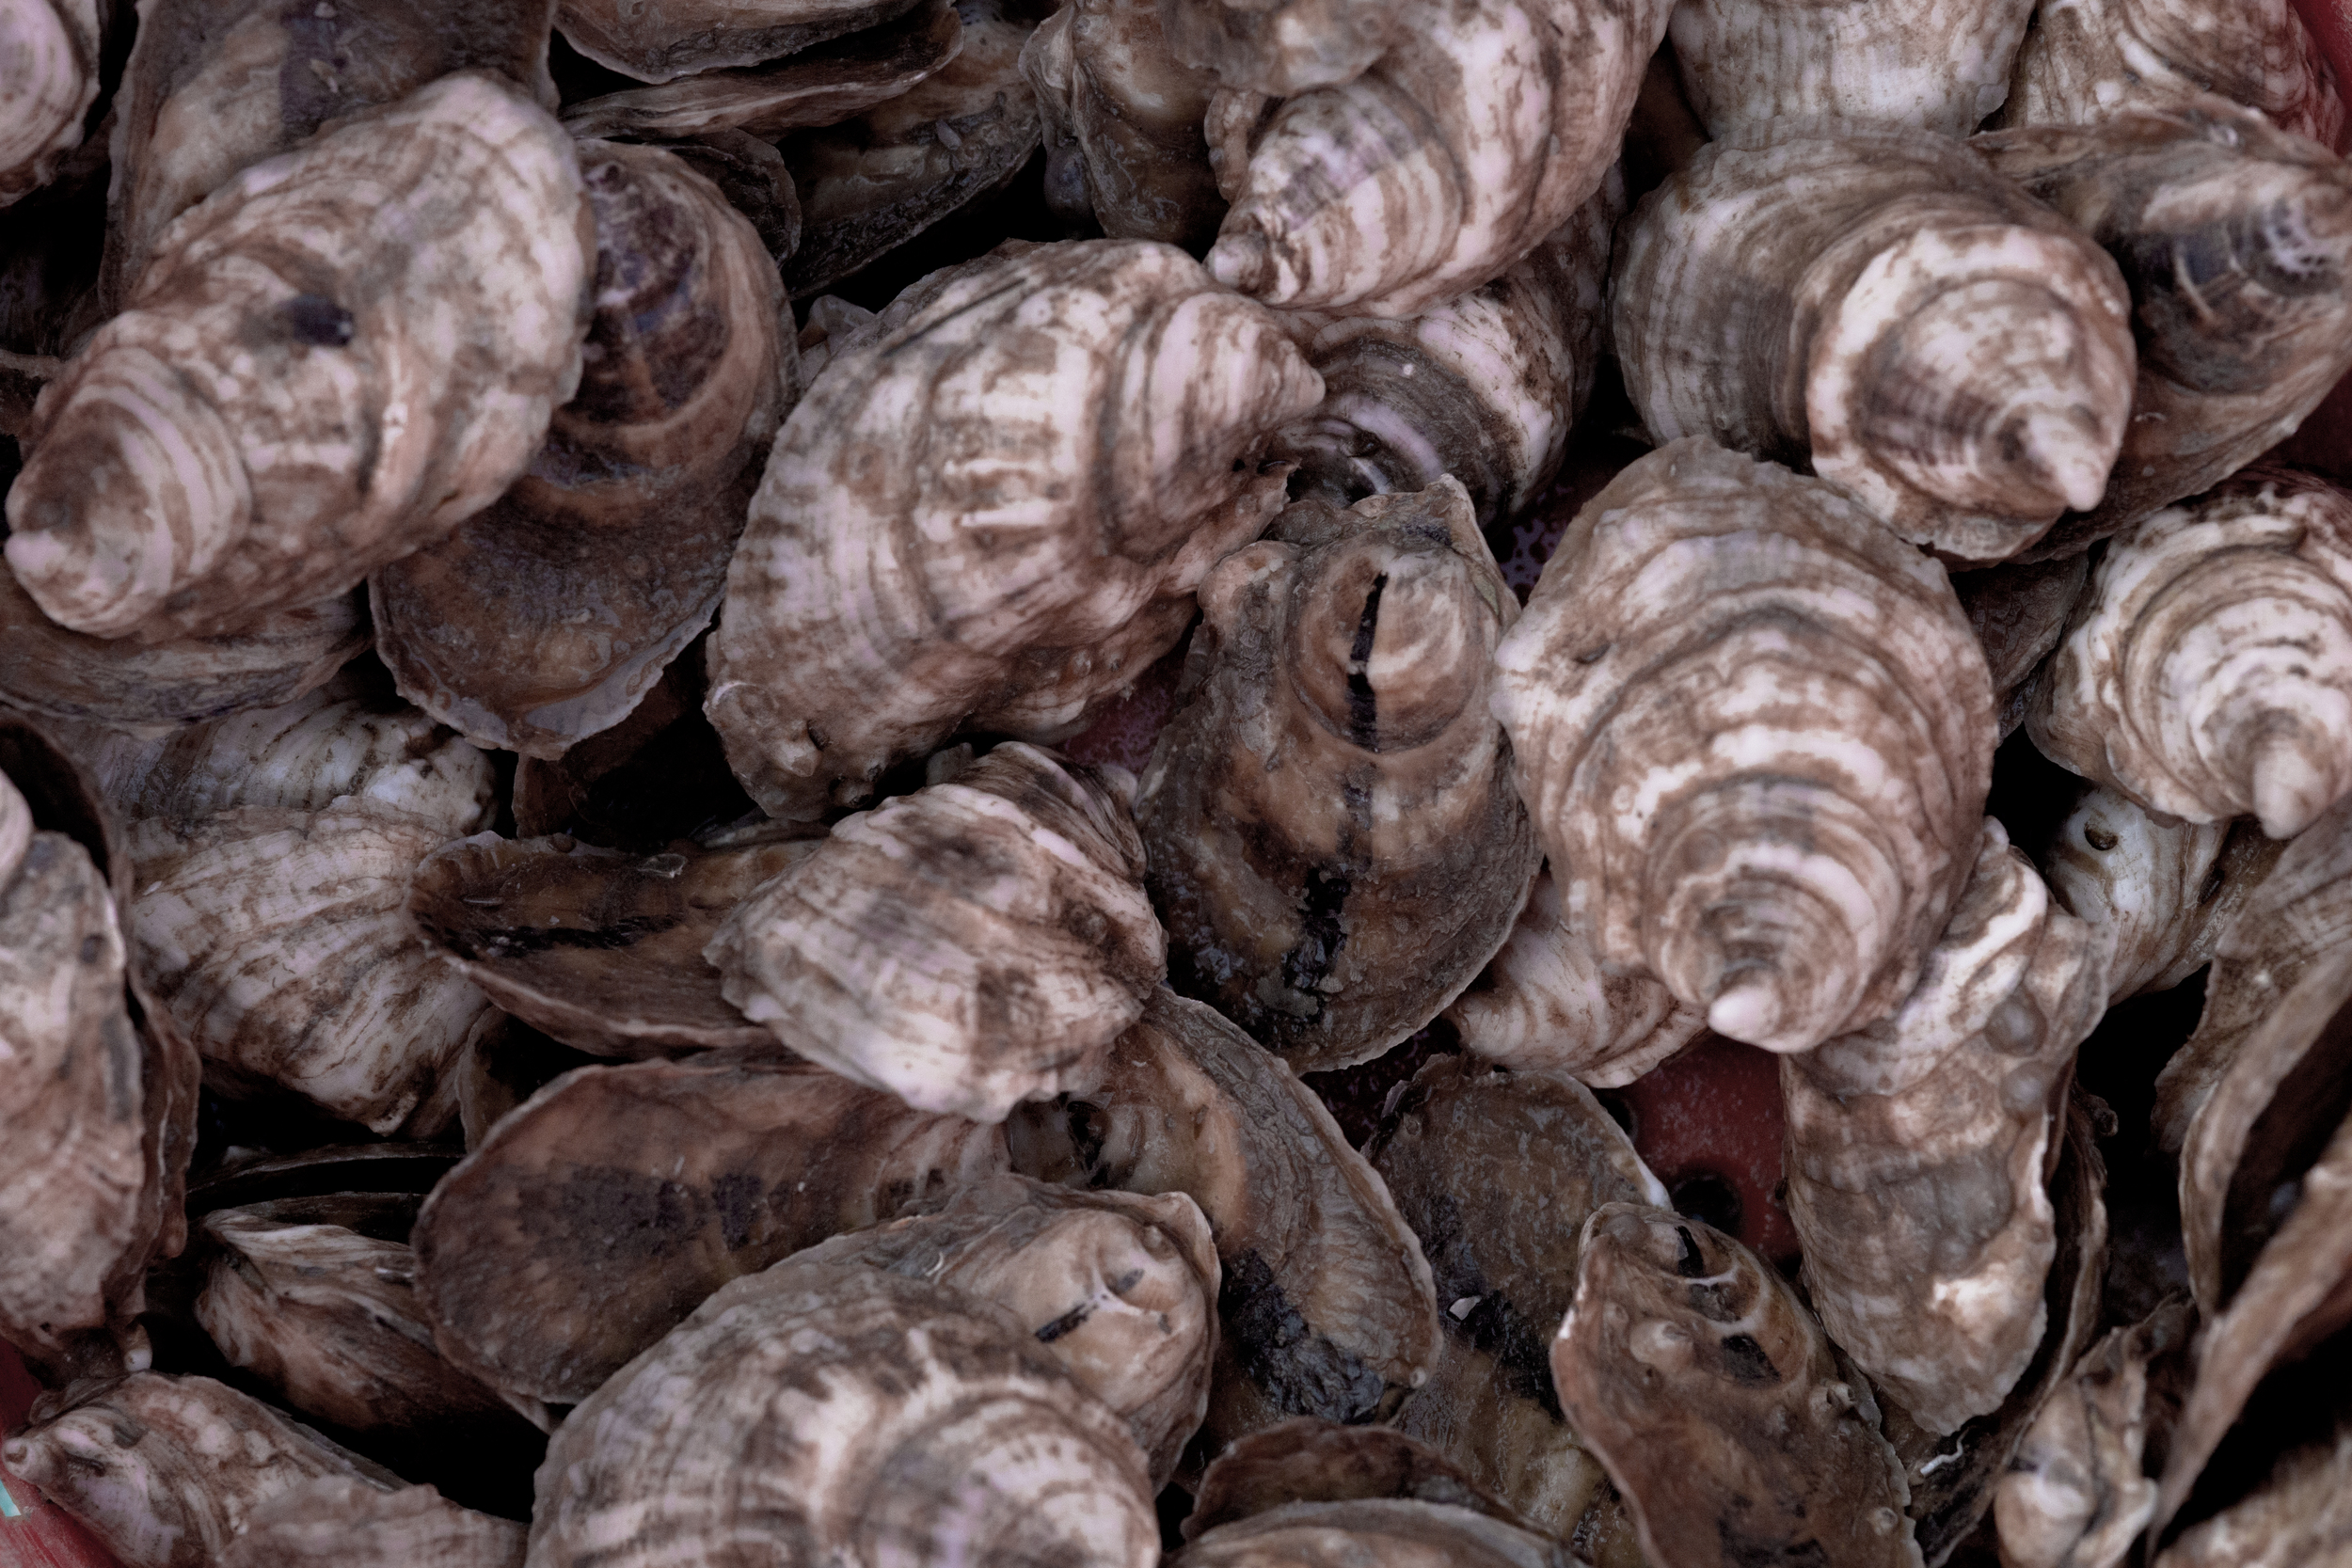 Tangier_Oysters_1Z1A0123.jpg